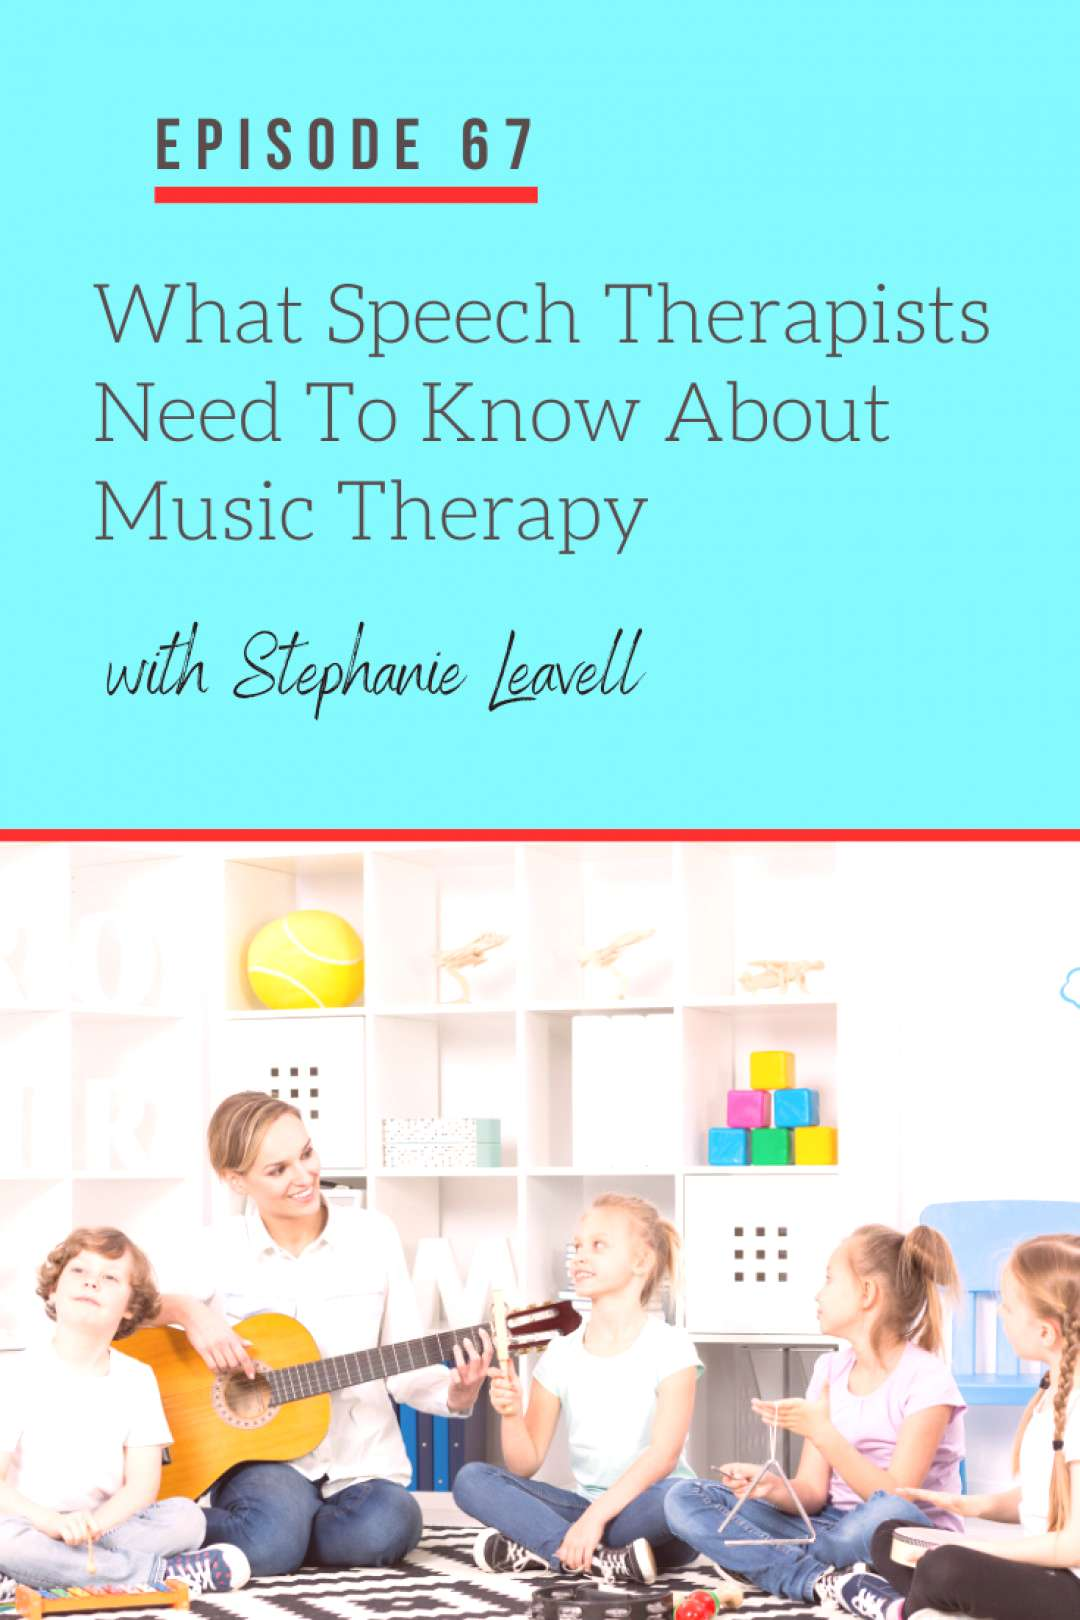 Did you know that music can promote speech and language skills? Tune in to learn about how music th